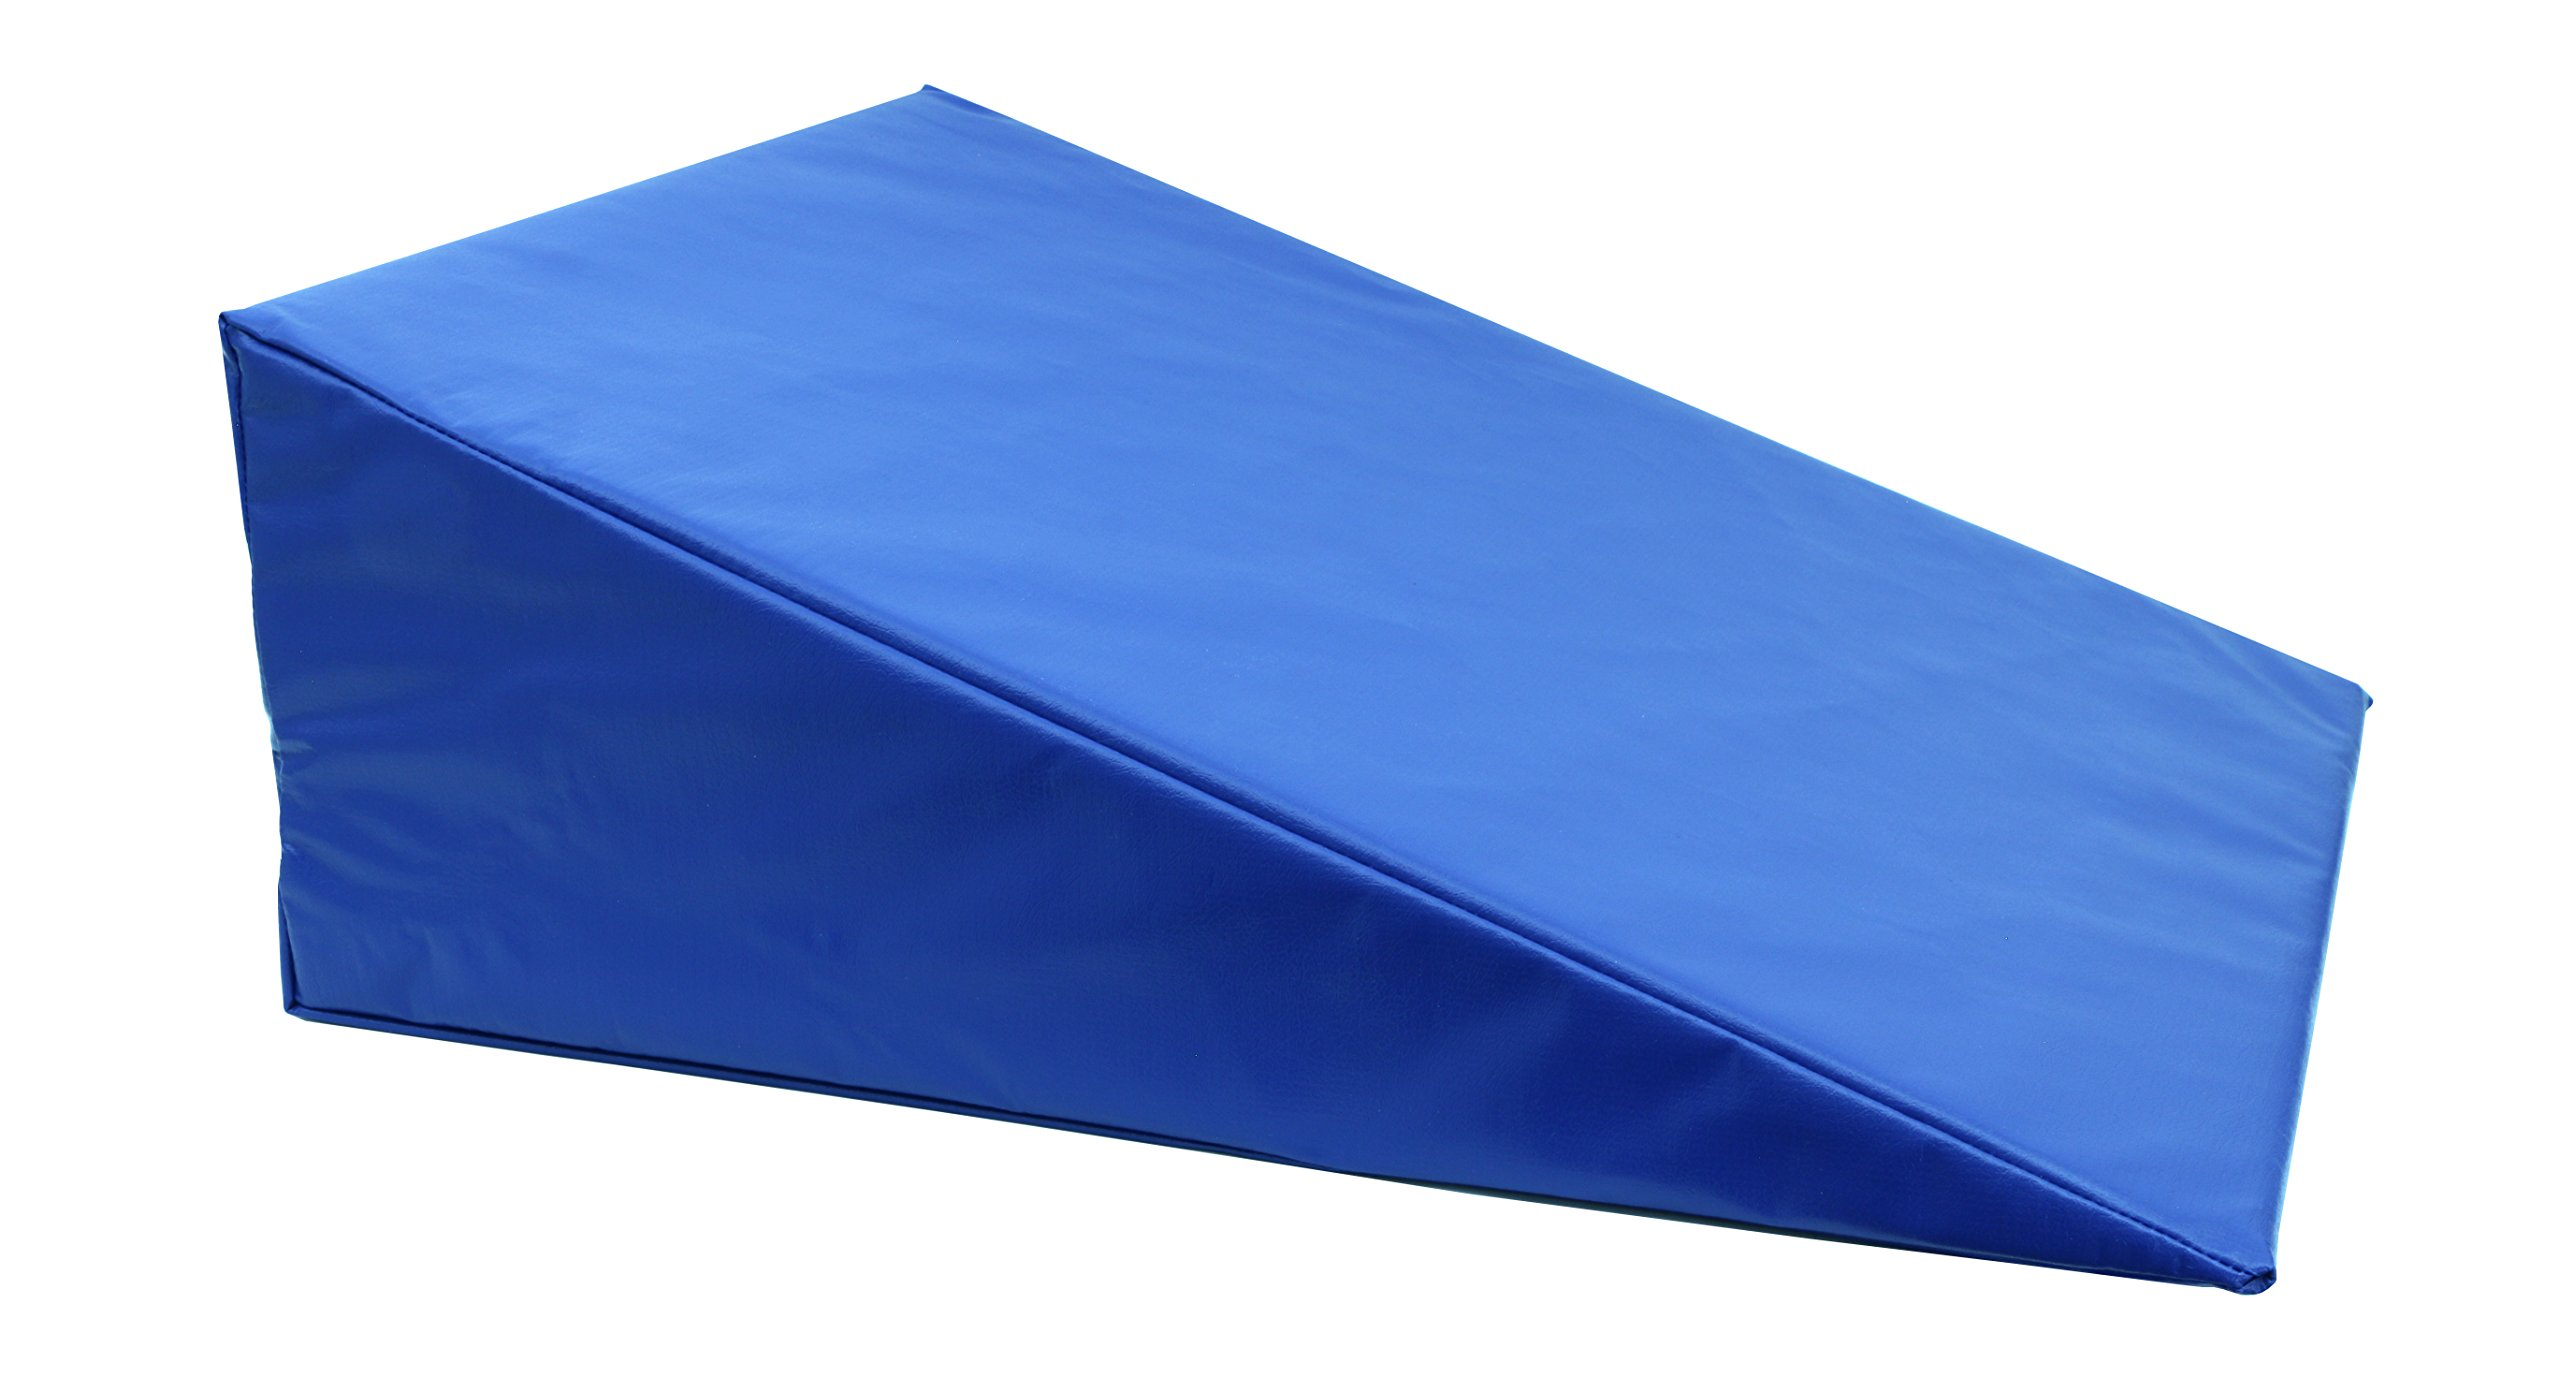 CanDo 31-2005S Positioning Wedge, Foam with Vinyl Cover, Soft, 24'' x 28'' x 10'', Royal Blue by Cando